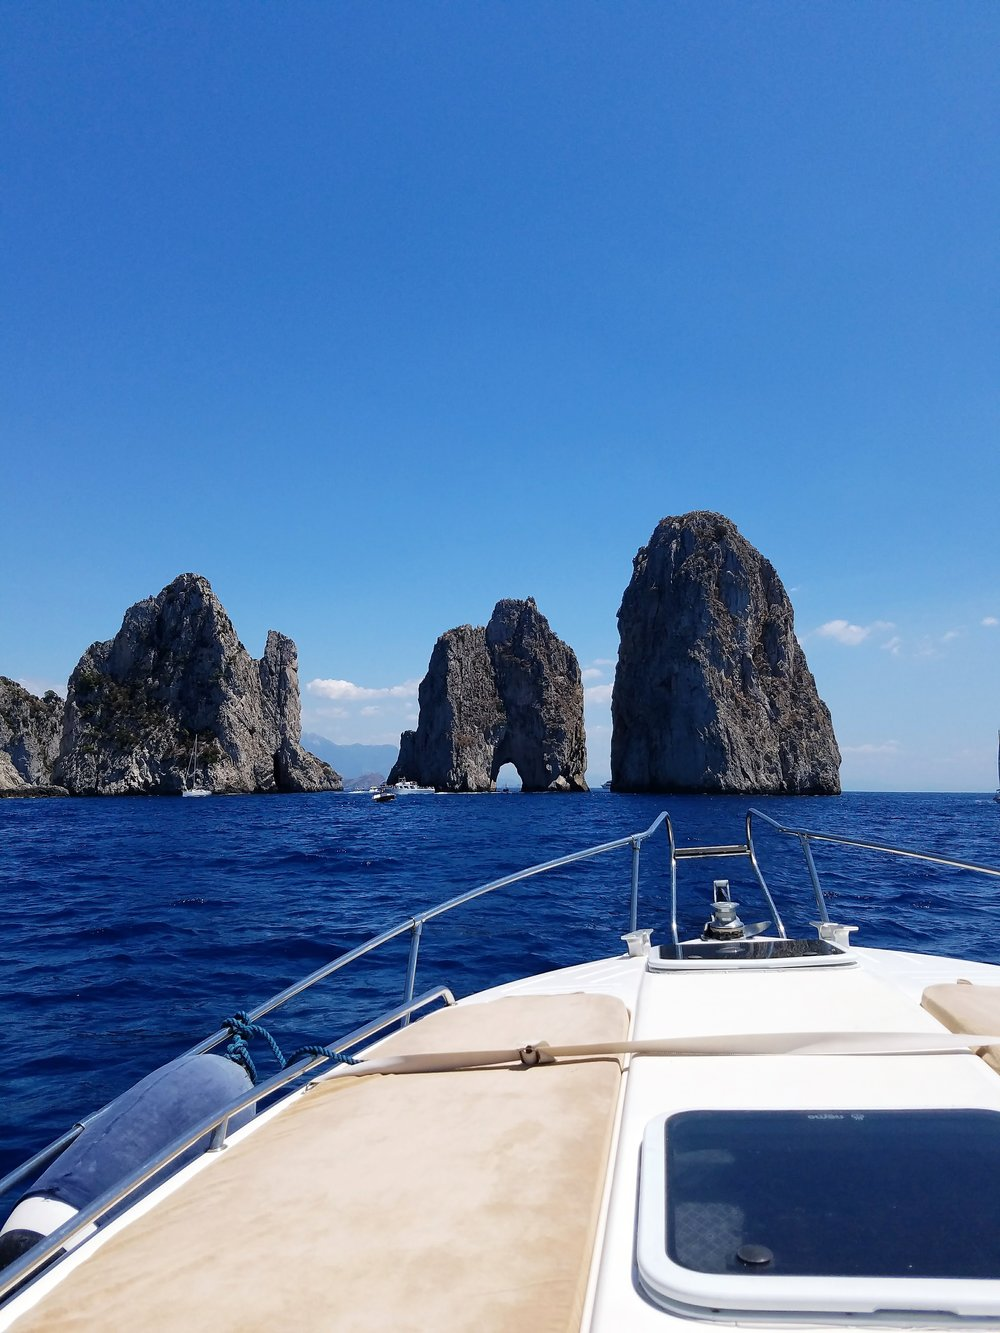 Capri by boat.jpg